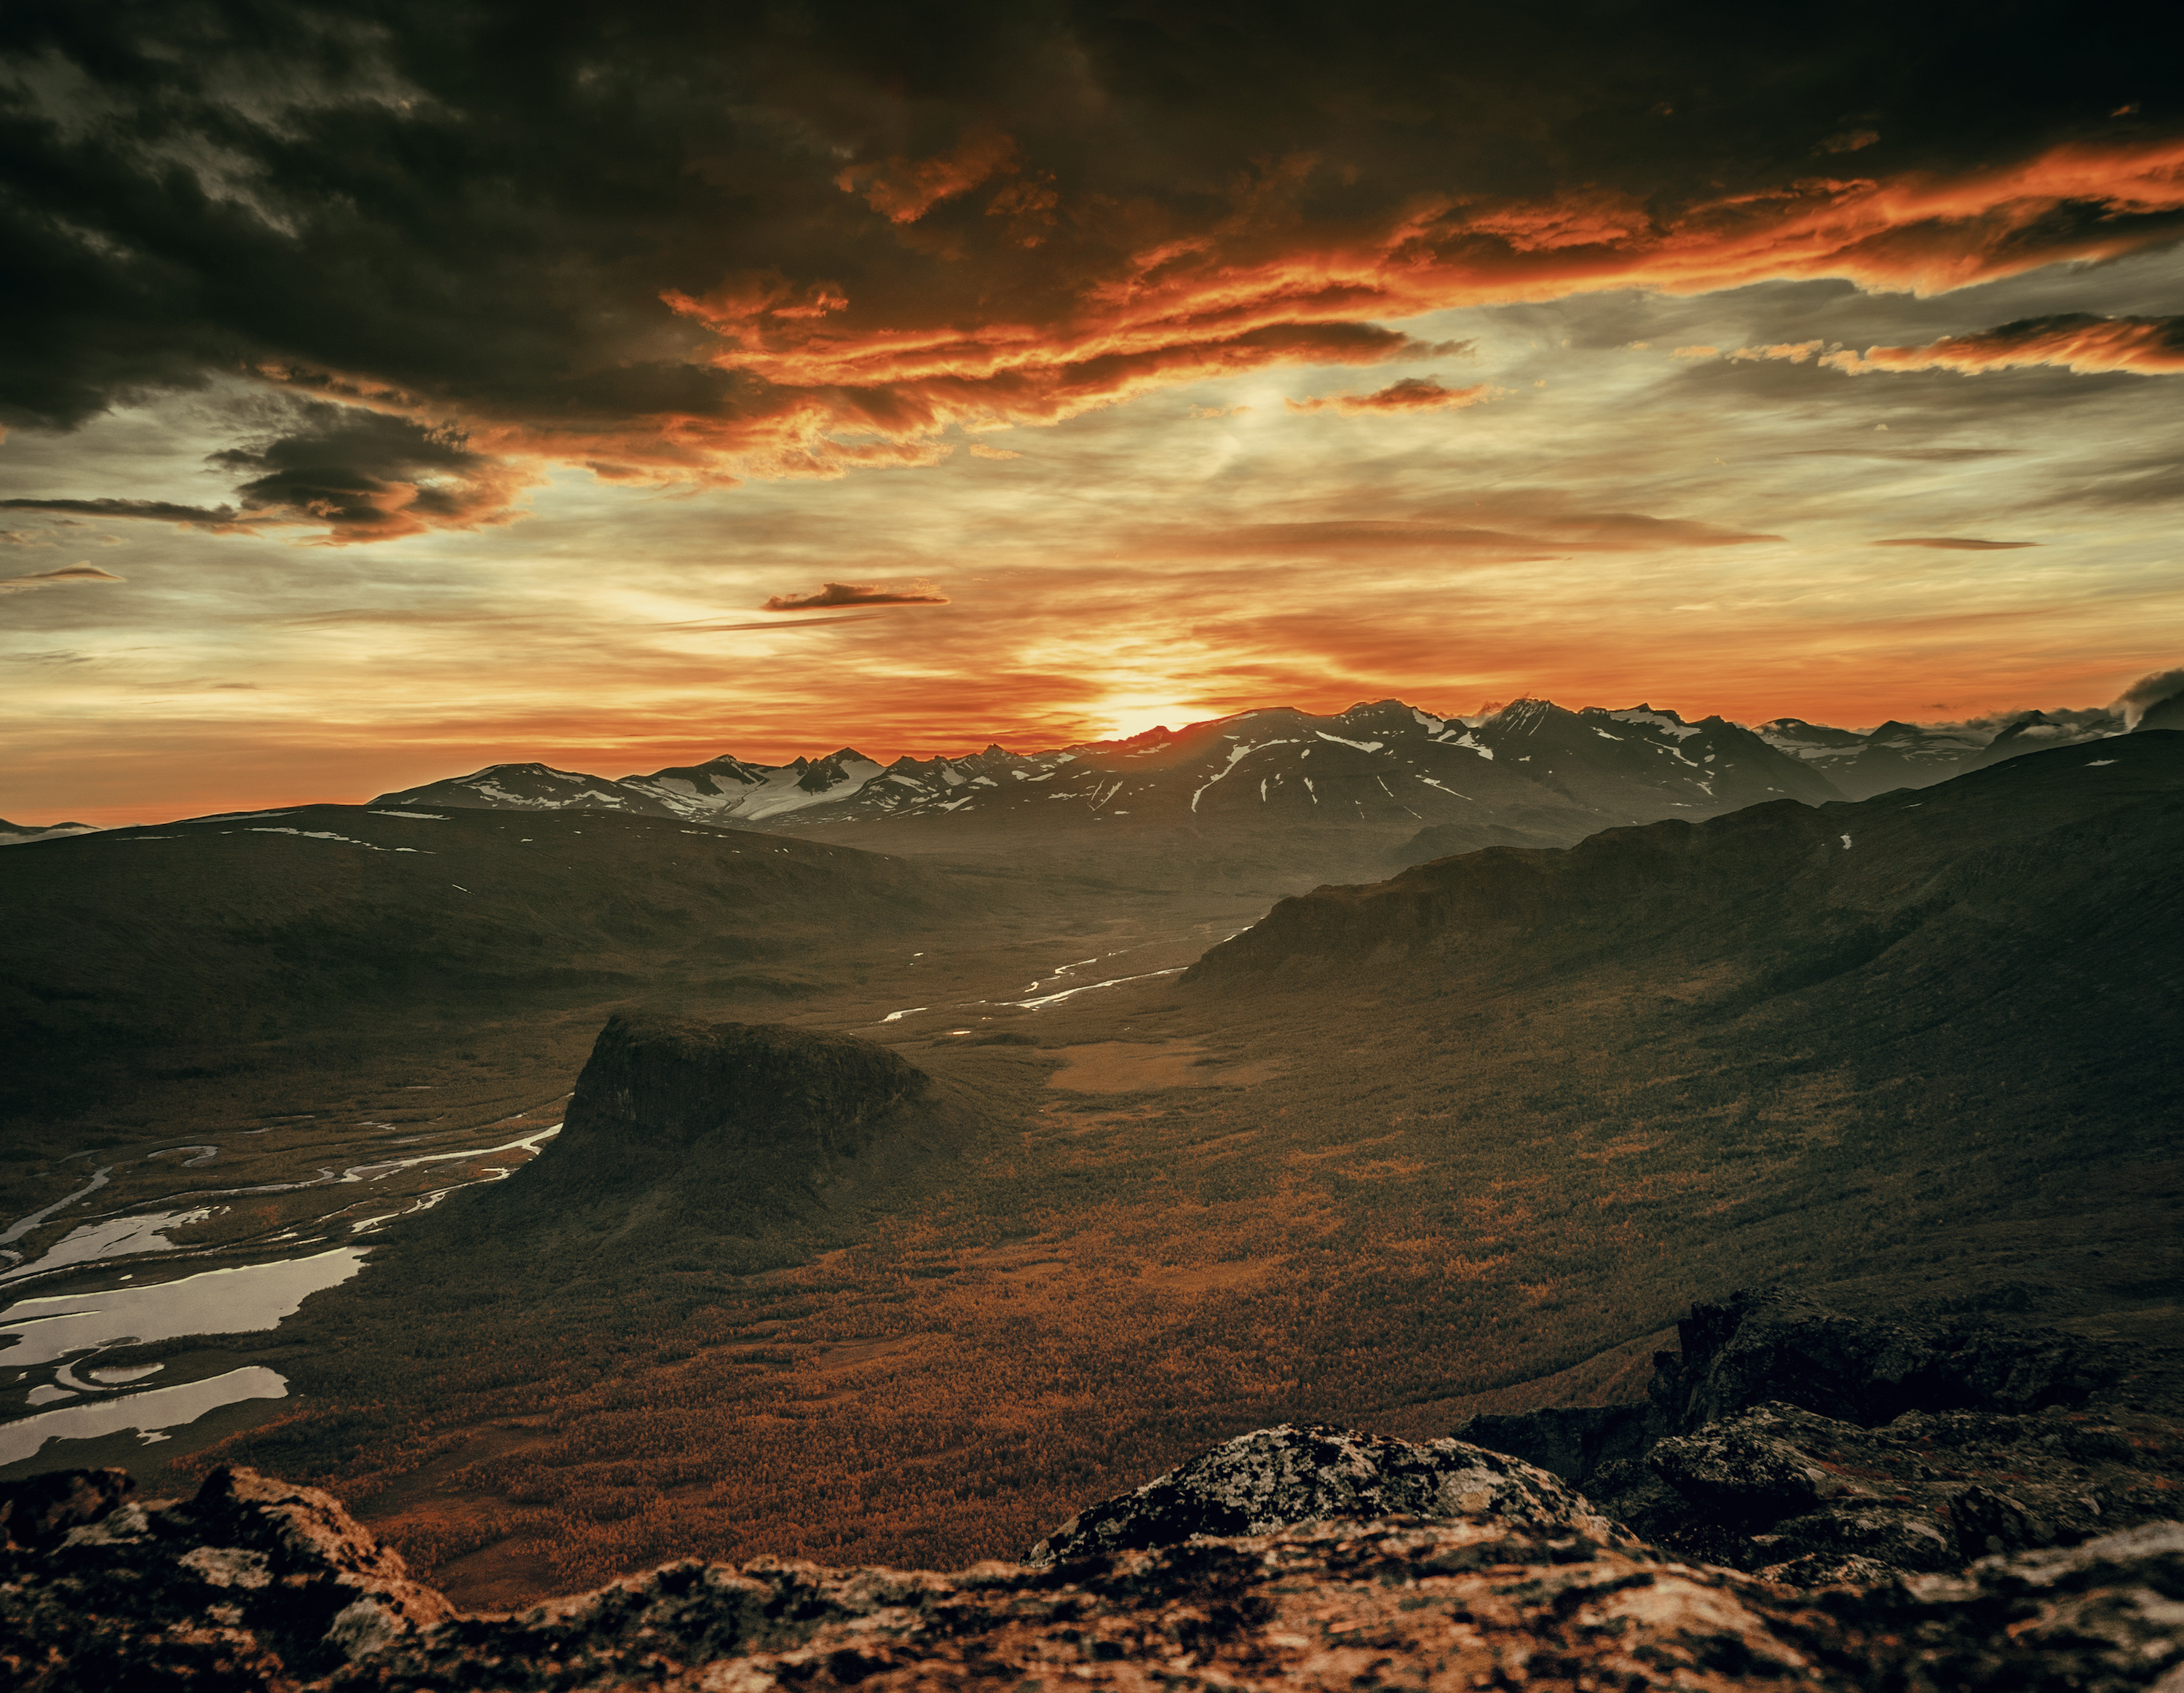 mountain sunset most beautiful picture of the day